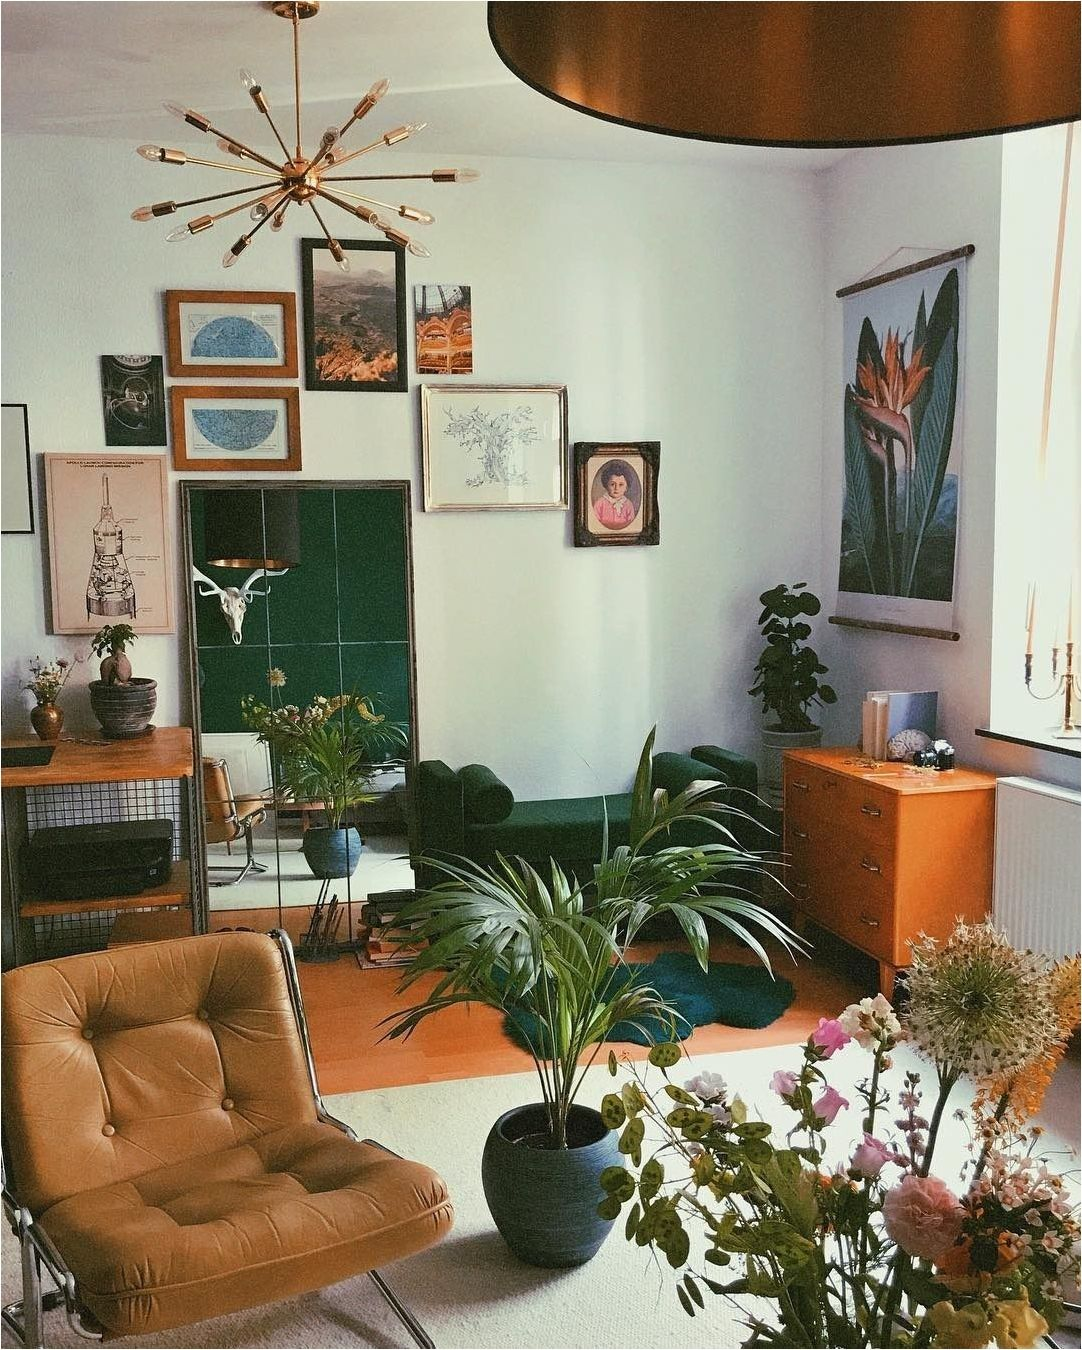 Furniture ideas for living room regardless if you were redecorating your first apartment or even your 5th build a delightful place each person will